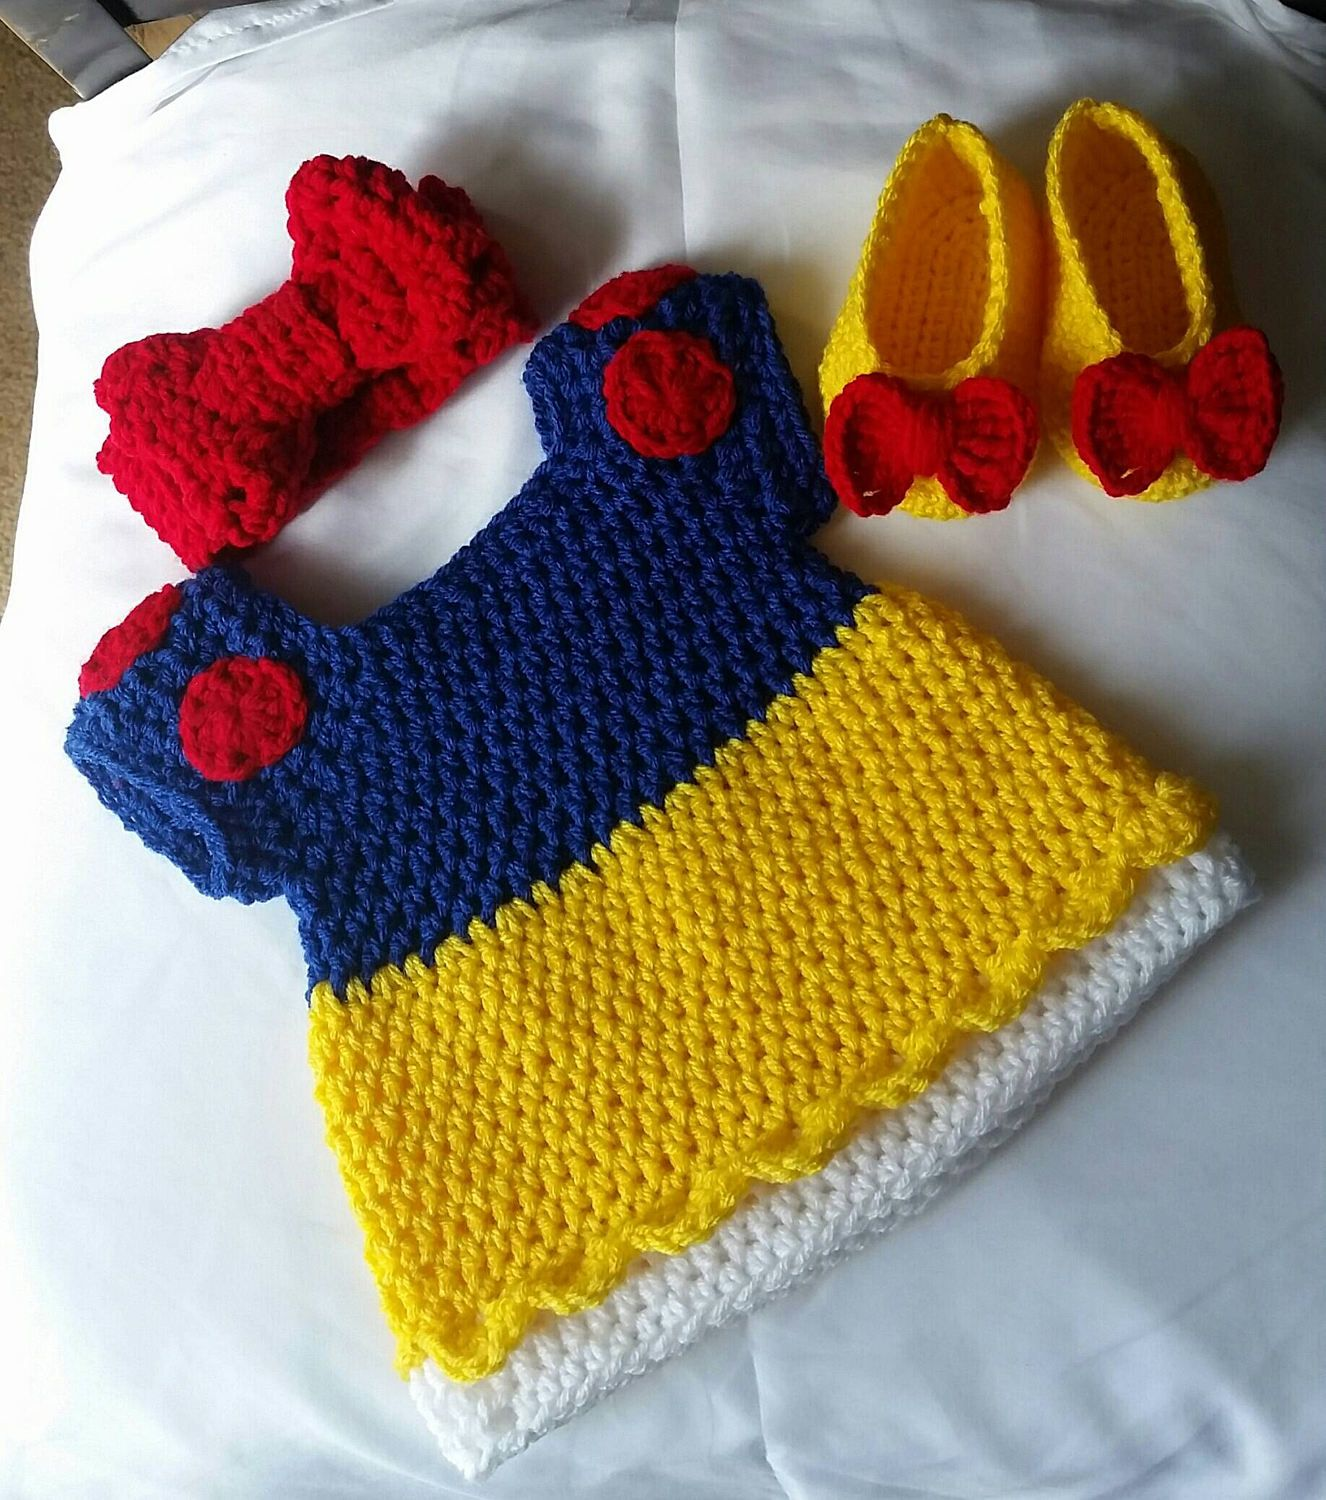 Crochet snow white costume by daisymaesboutique331 on etsy etsy crochet snow white costume by daisymaesboutique331 on etsy bankloansurffo Gallery